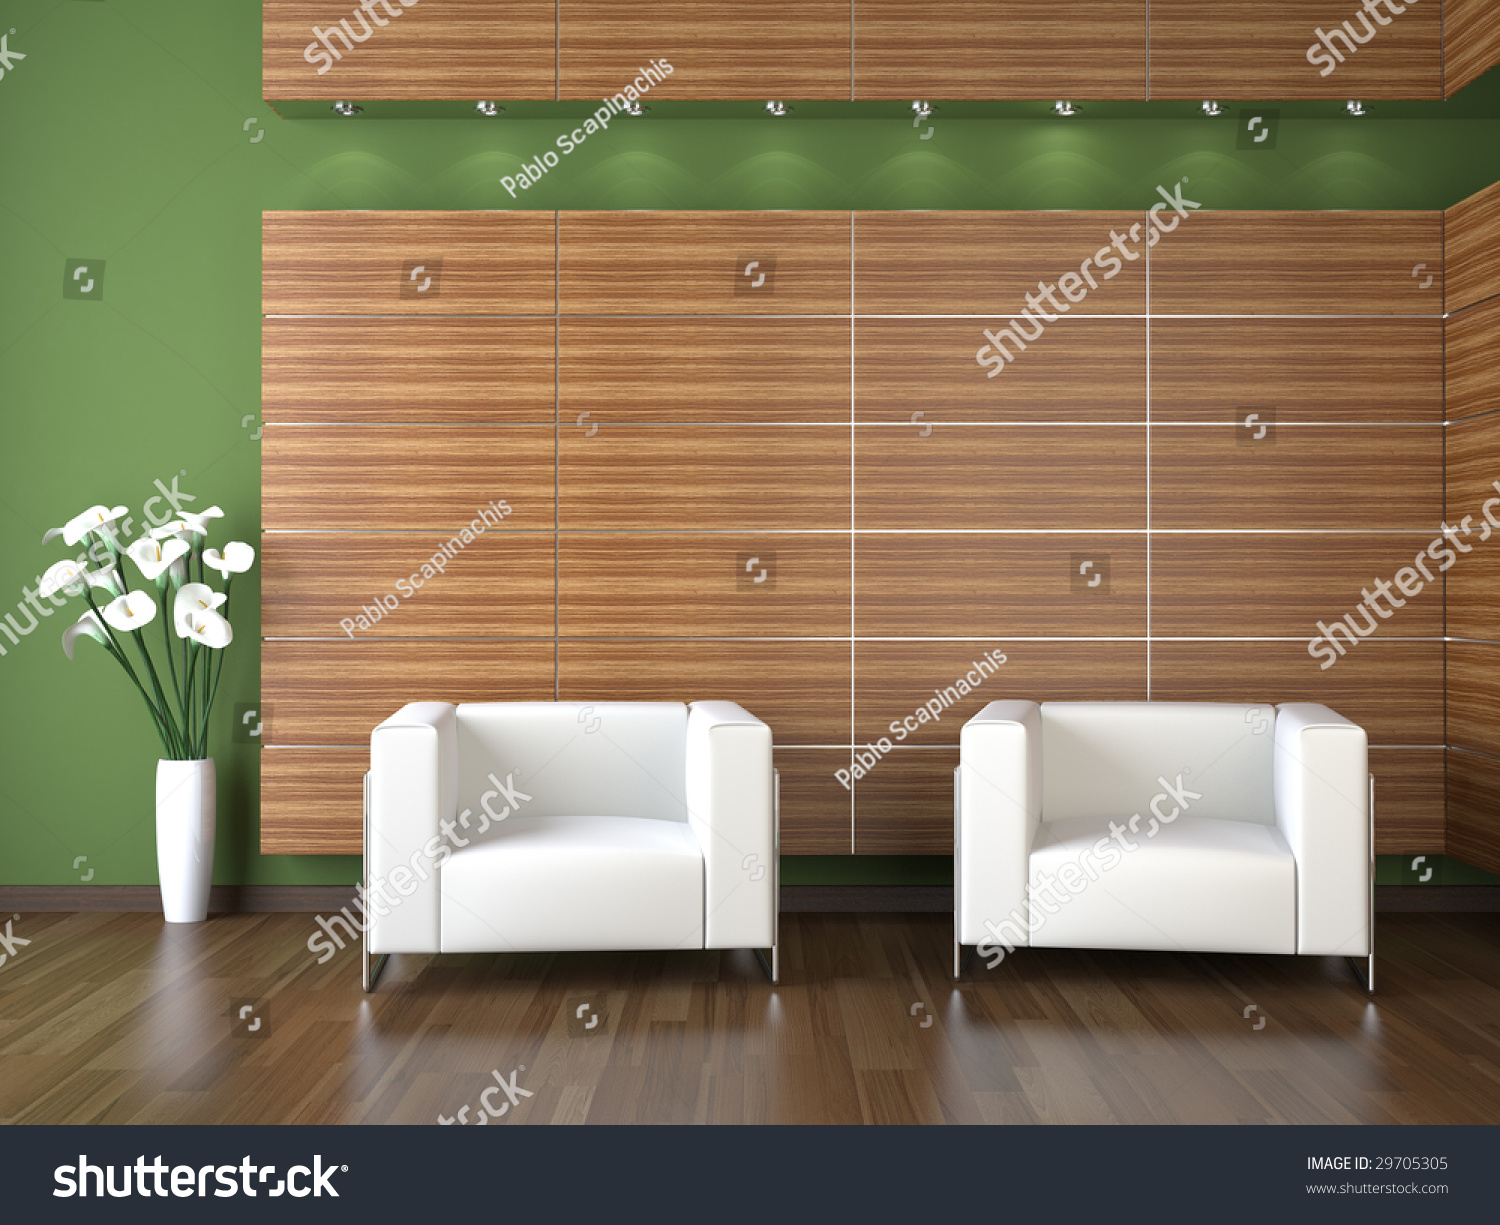 Interior Design Modern Waiting Room Wood Stock Illustration 29705305 Shutterstock